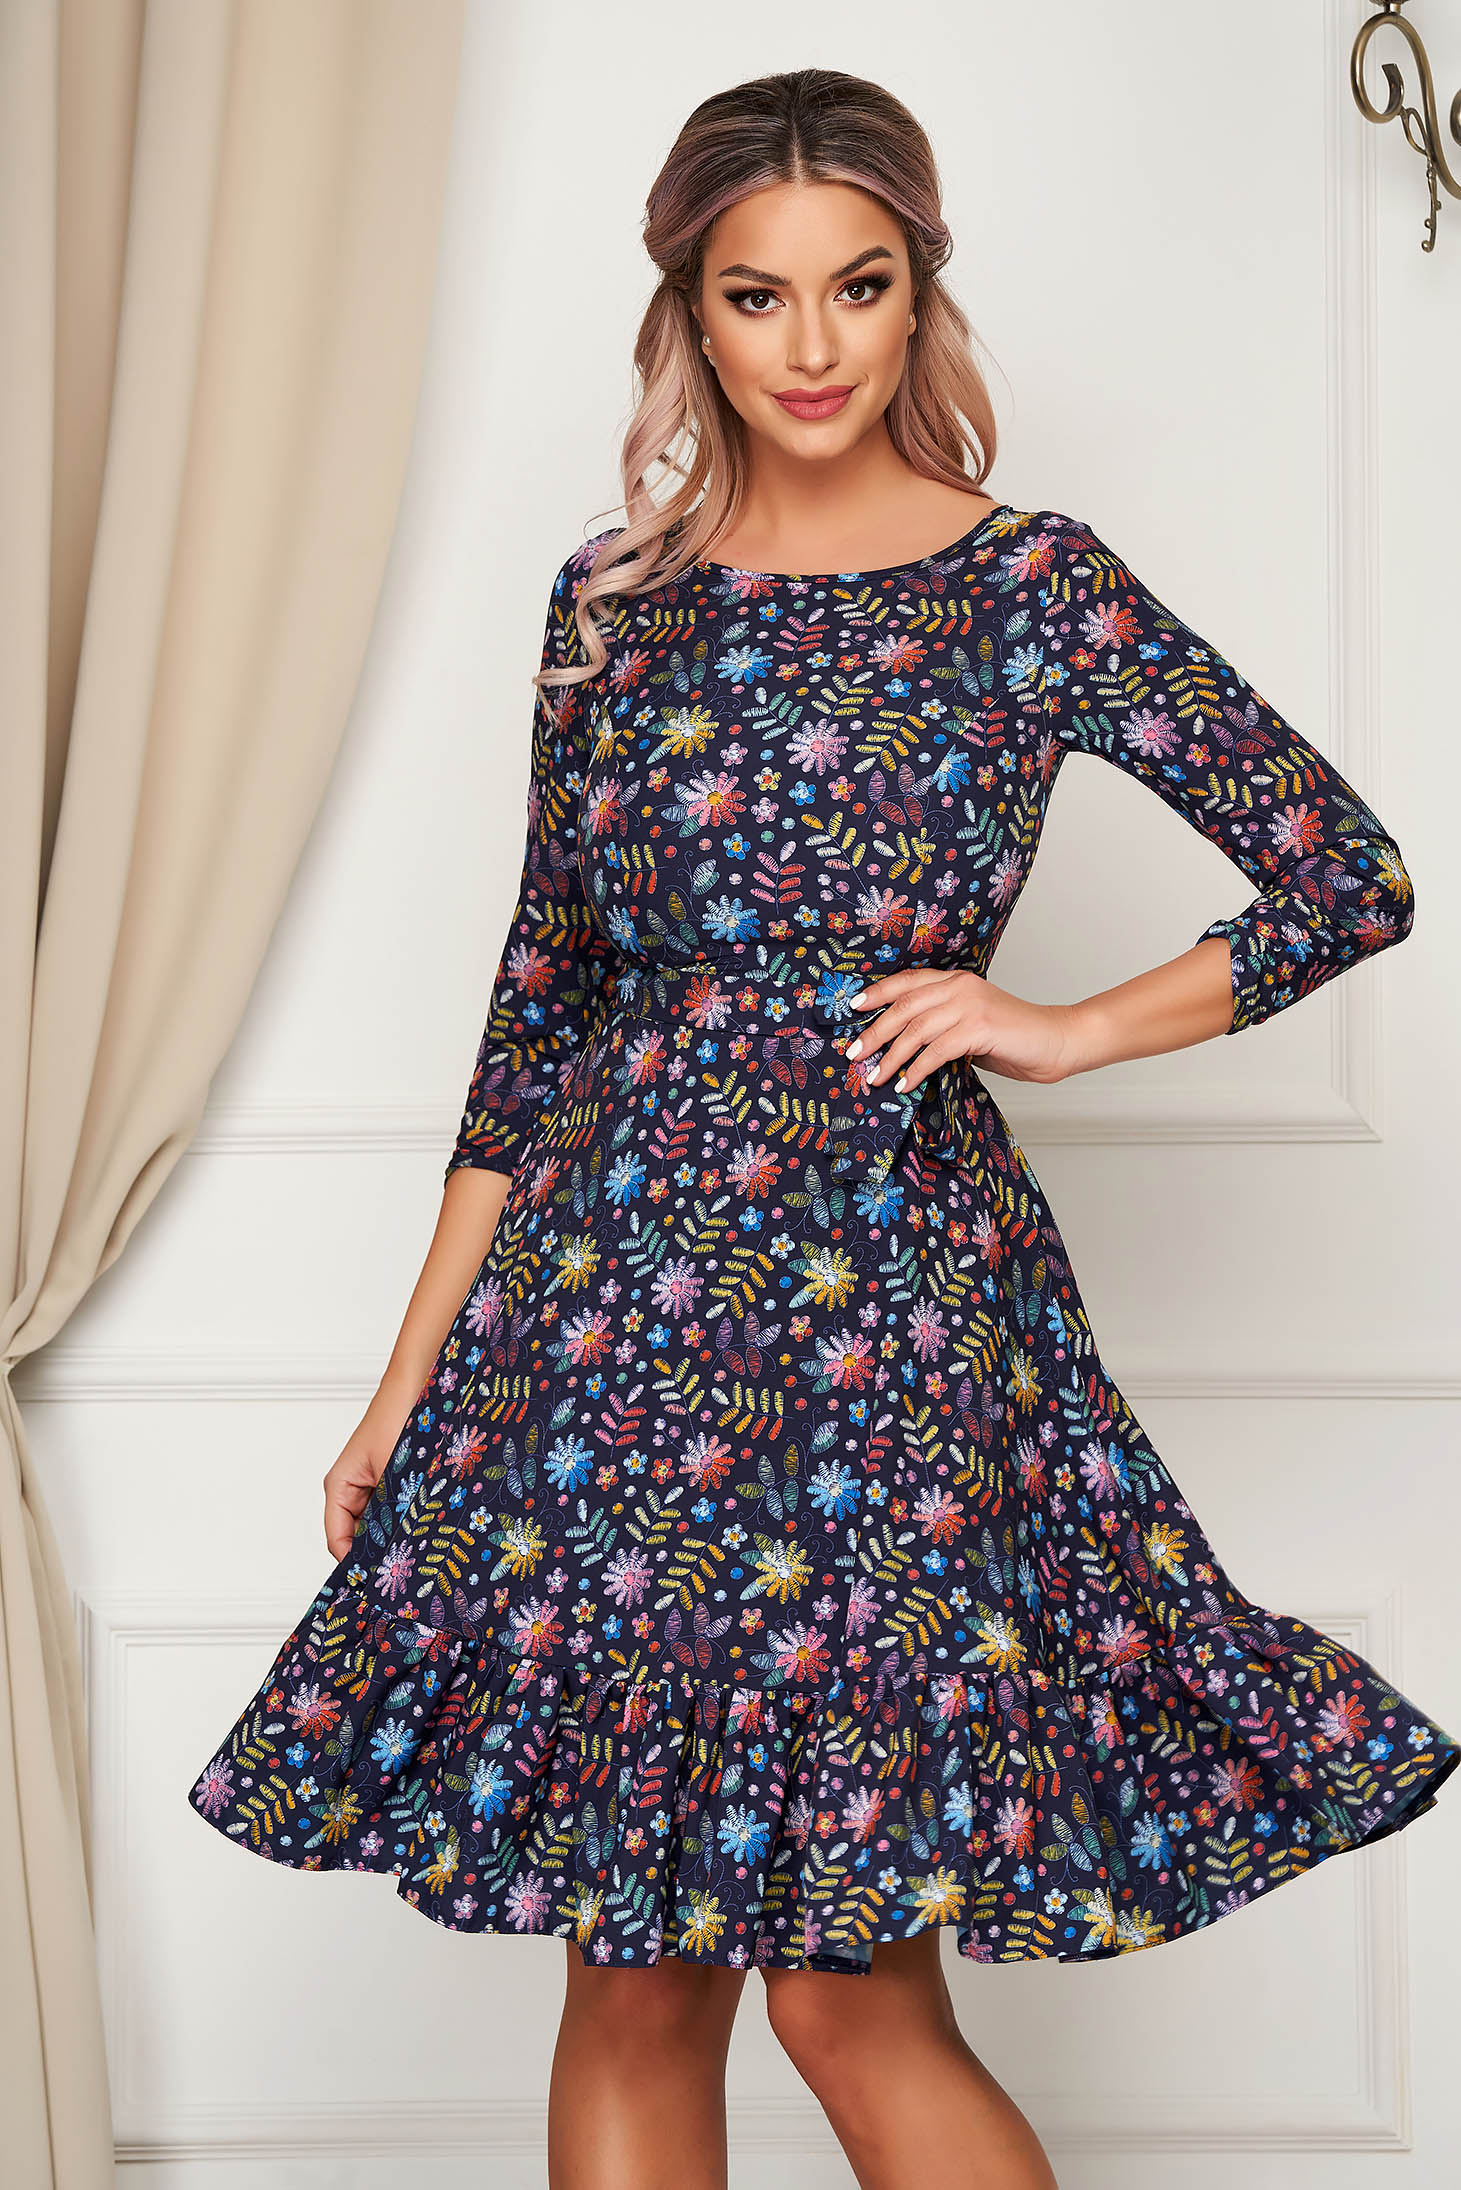 StarShinerS darkblue dress midi daily cloche thin fabric with ruffles at the buttom of the dress